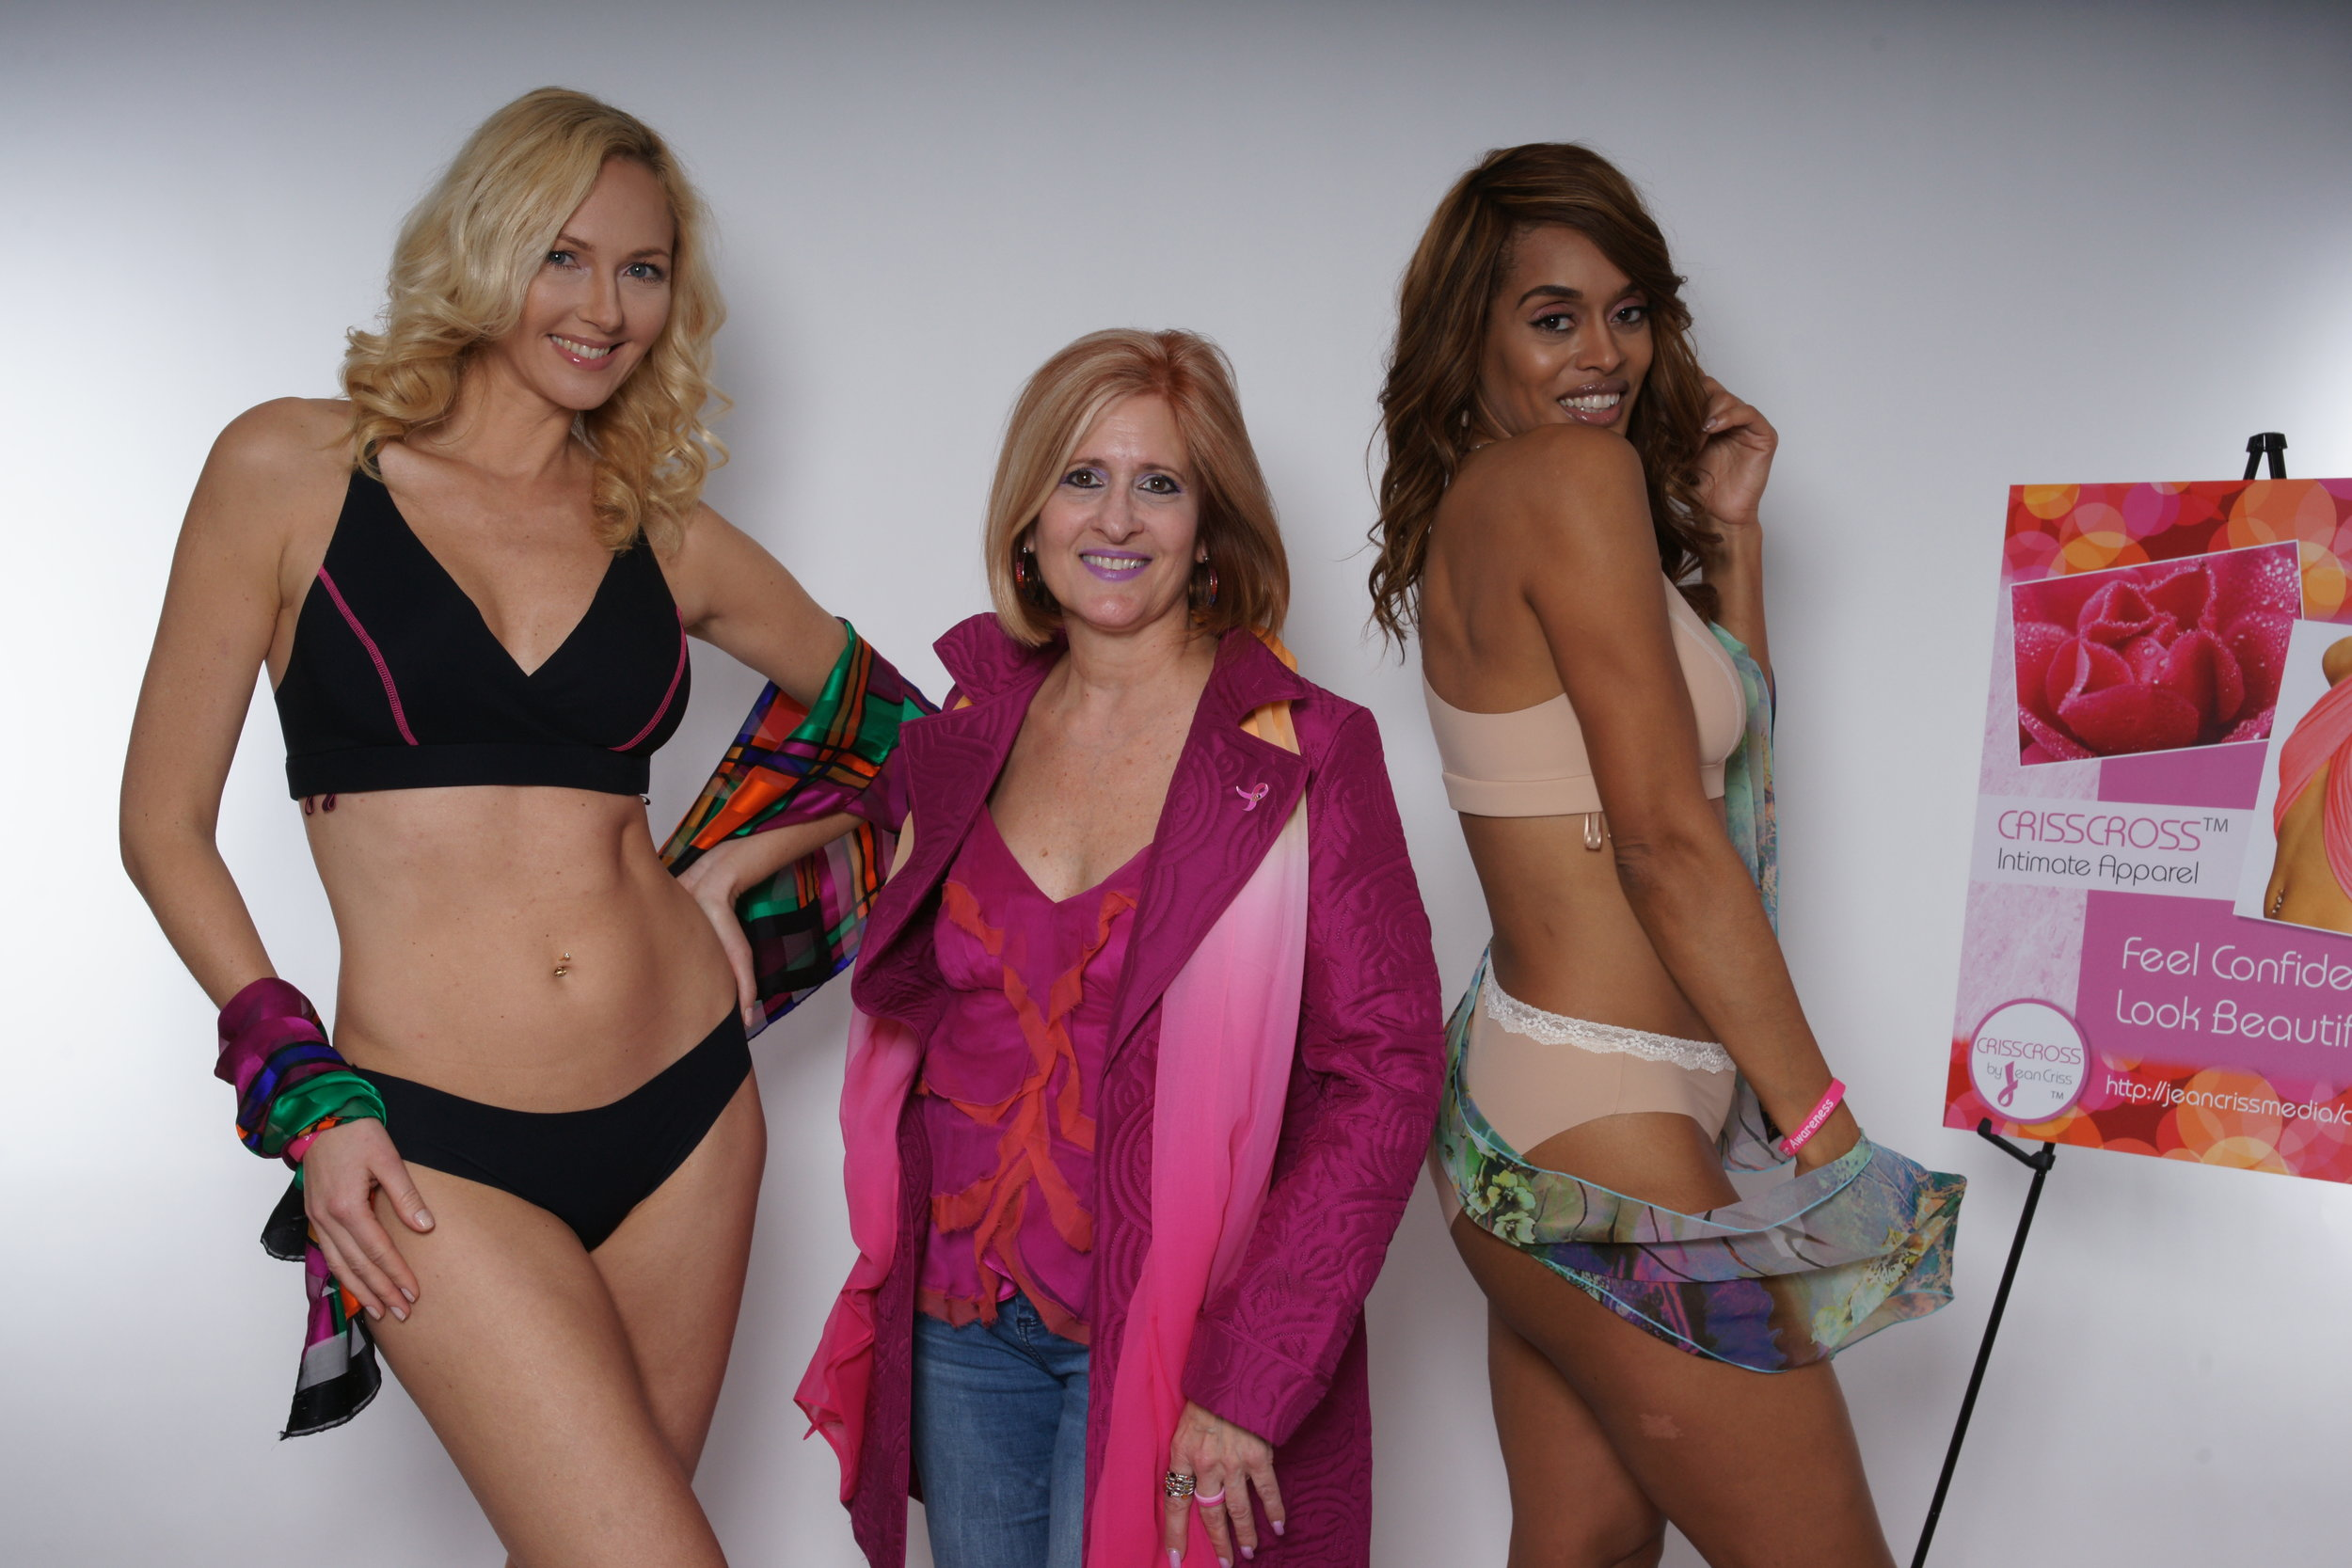 CRISSCROSS collection featured with Jean Criss, designer and founder